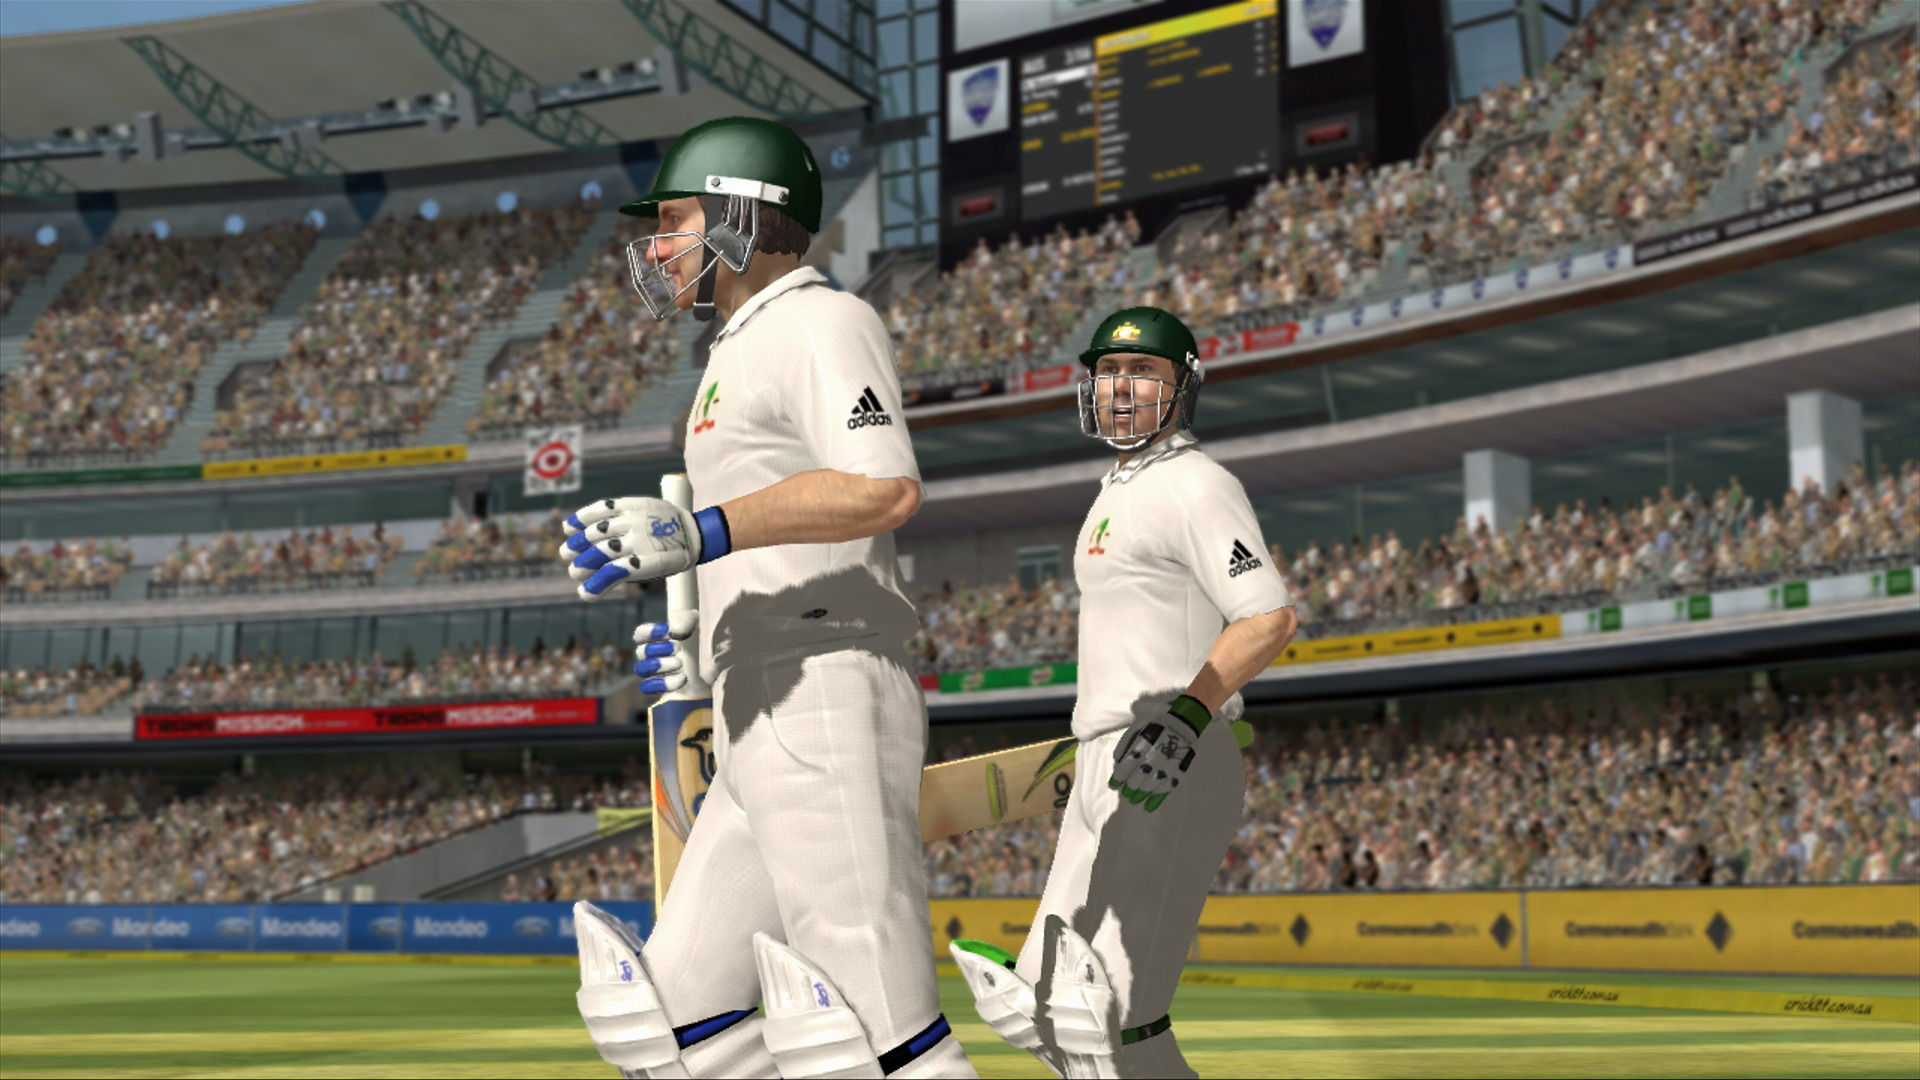 ashes cricket 2009 pc game free download utorrent